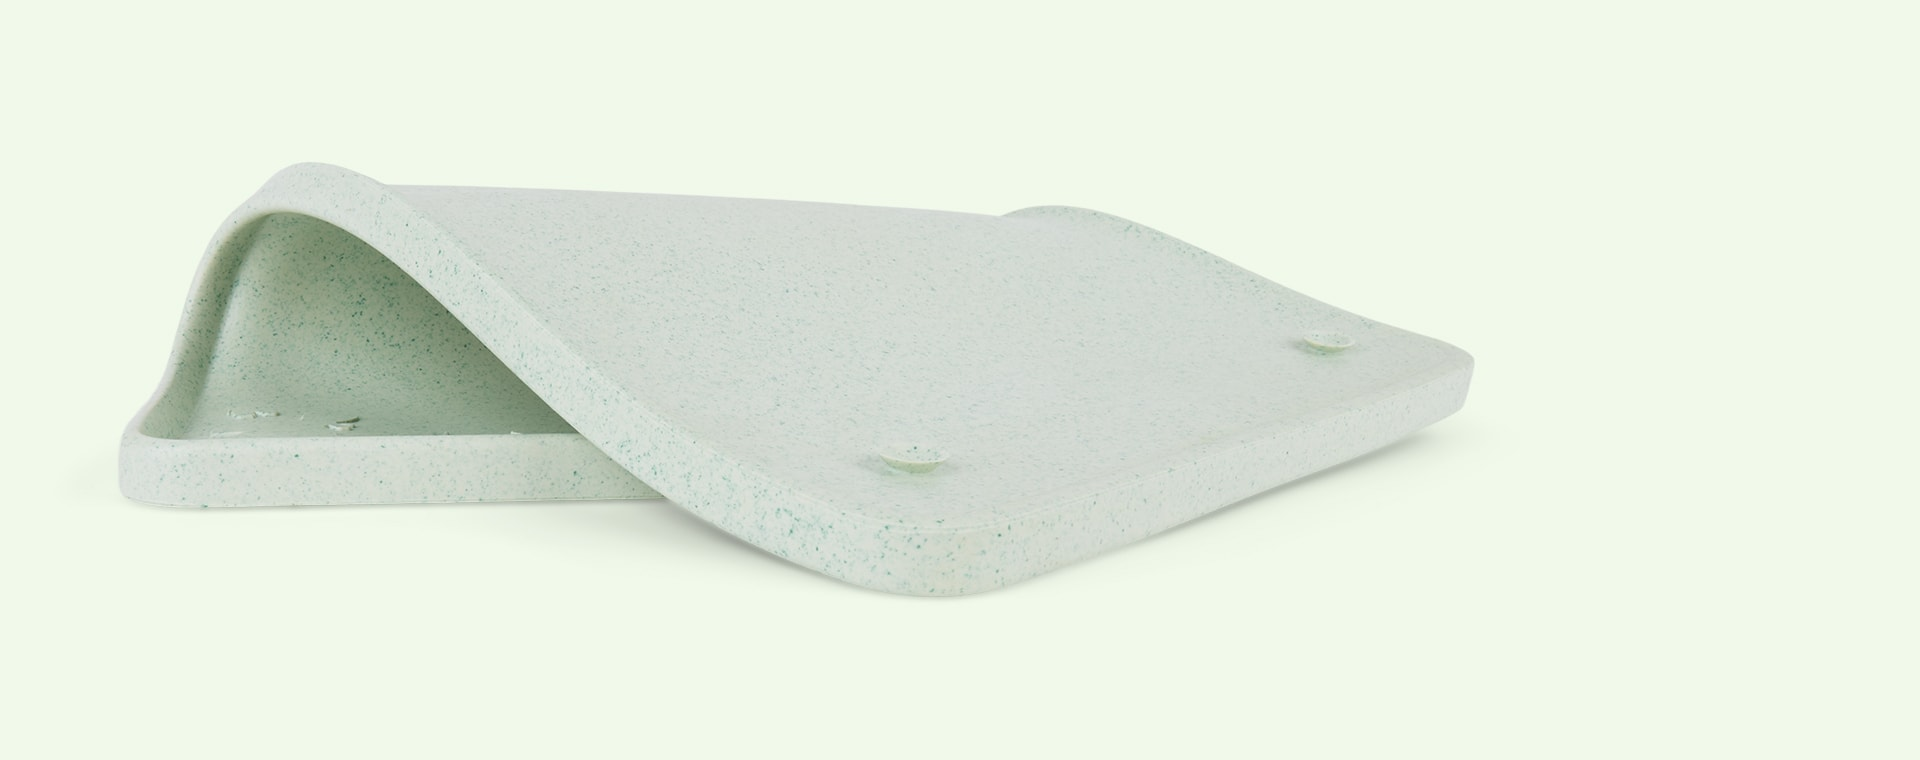 Mint Hevea Upcycled Placemat